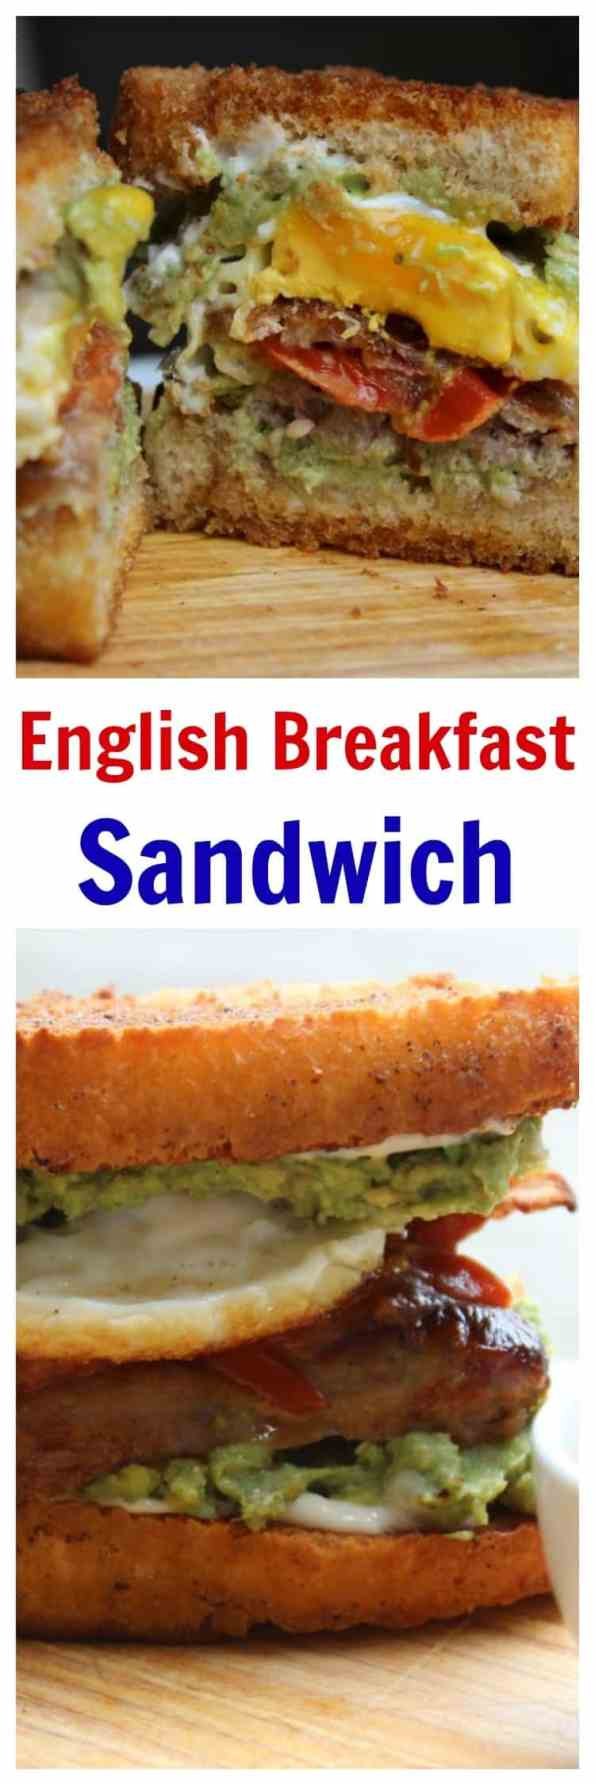 Fried Bread English Breakfast Sandwich. This full English breakfast in a sandwich is an indulgent way to start the day and banish a hangover! Ready in 30 minutes